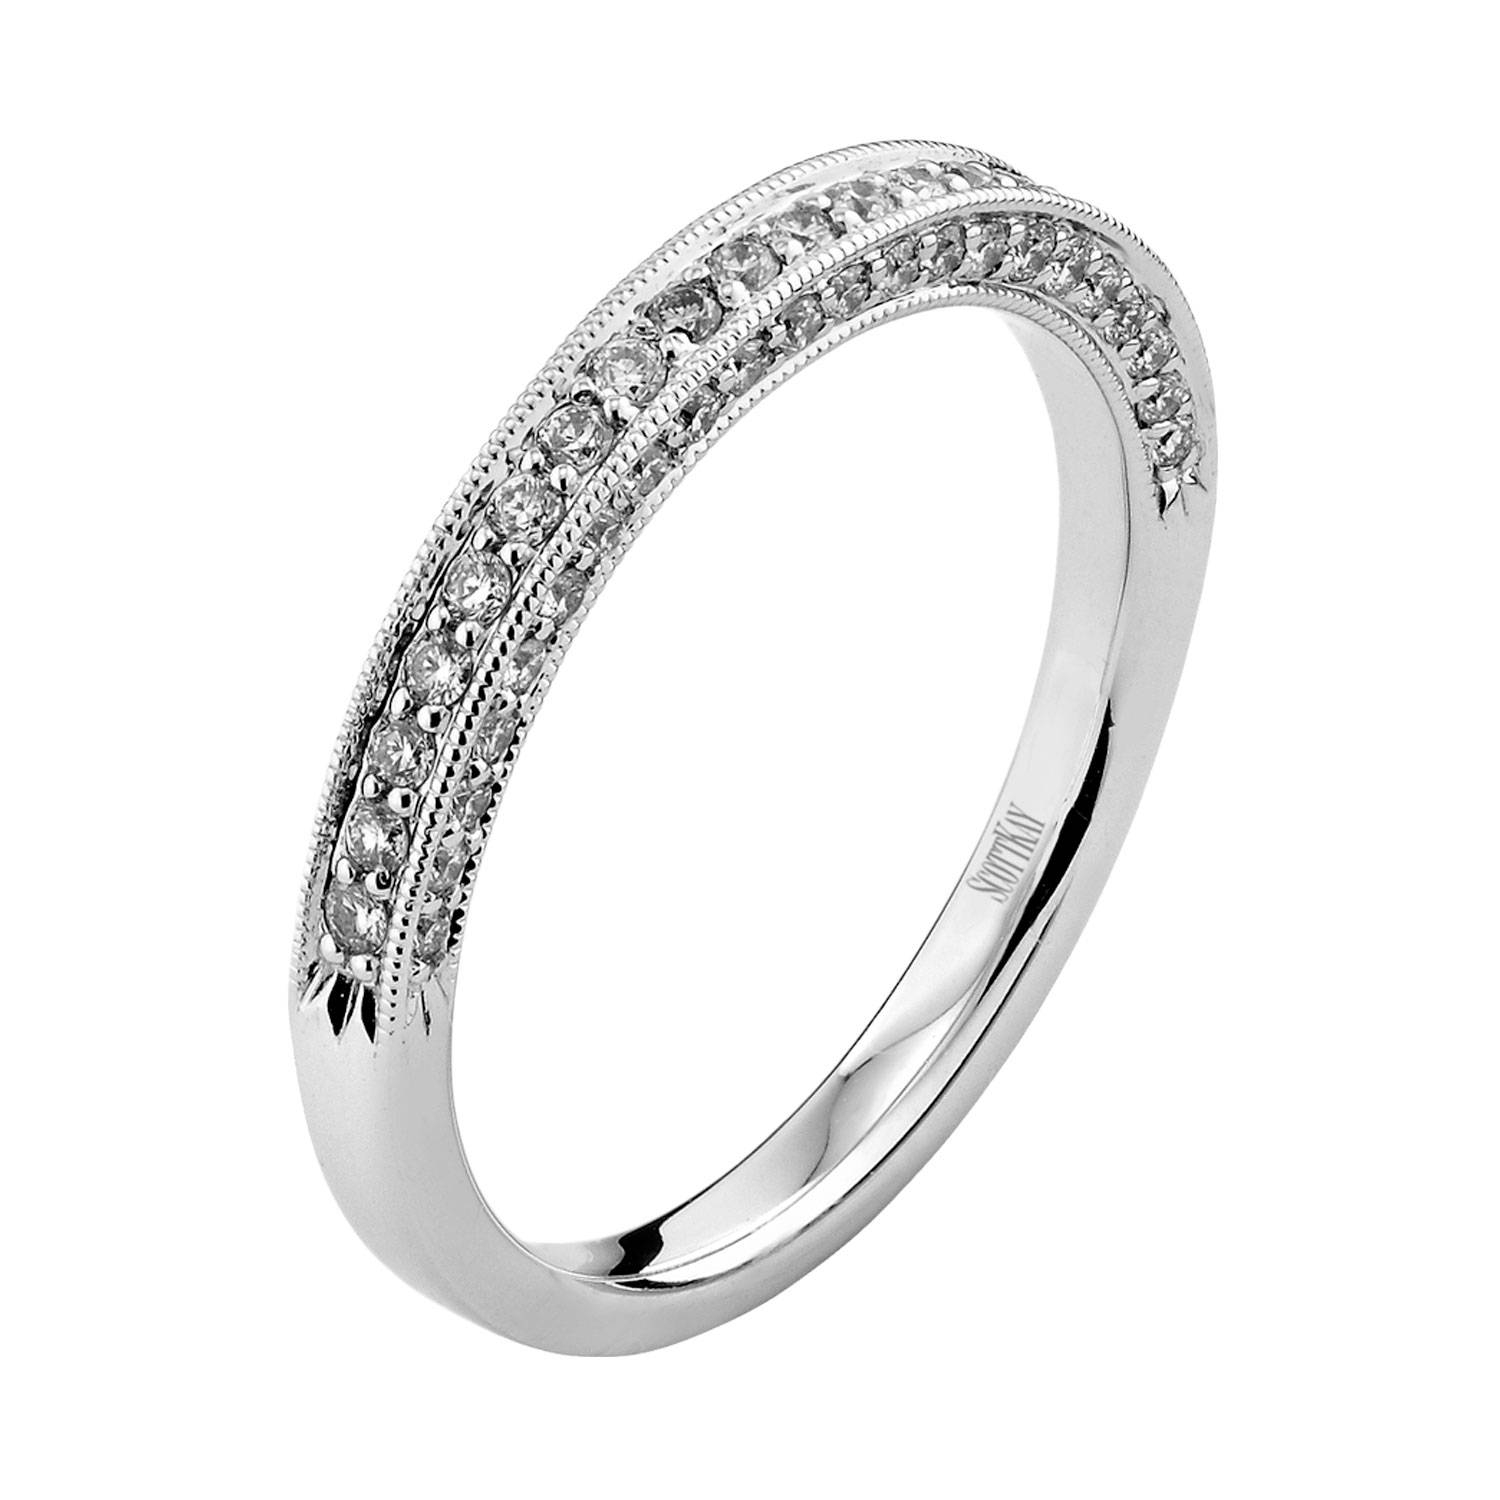 Featured Photo of Scott Kay Tiara Wedding Bands